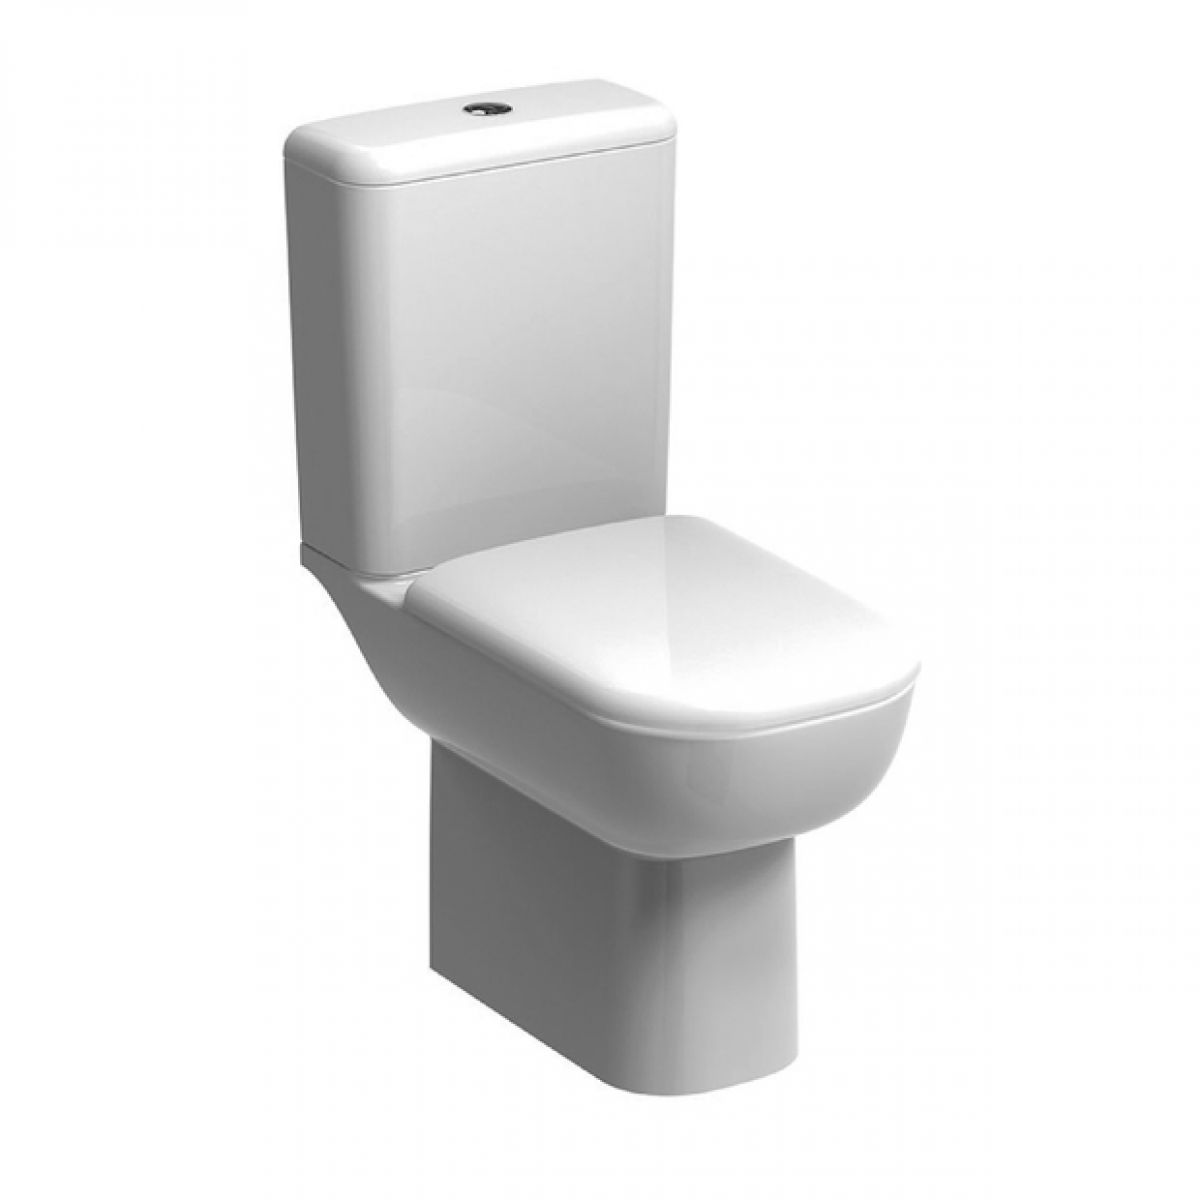 geberit smyle close coupled toilet rimfree bathrooms